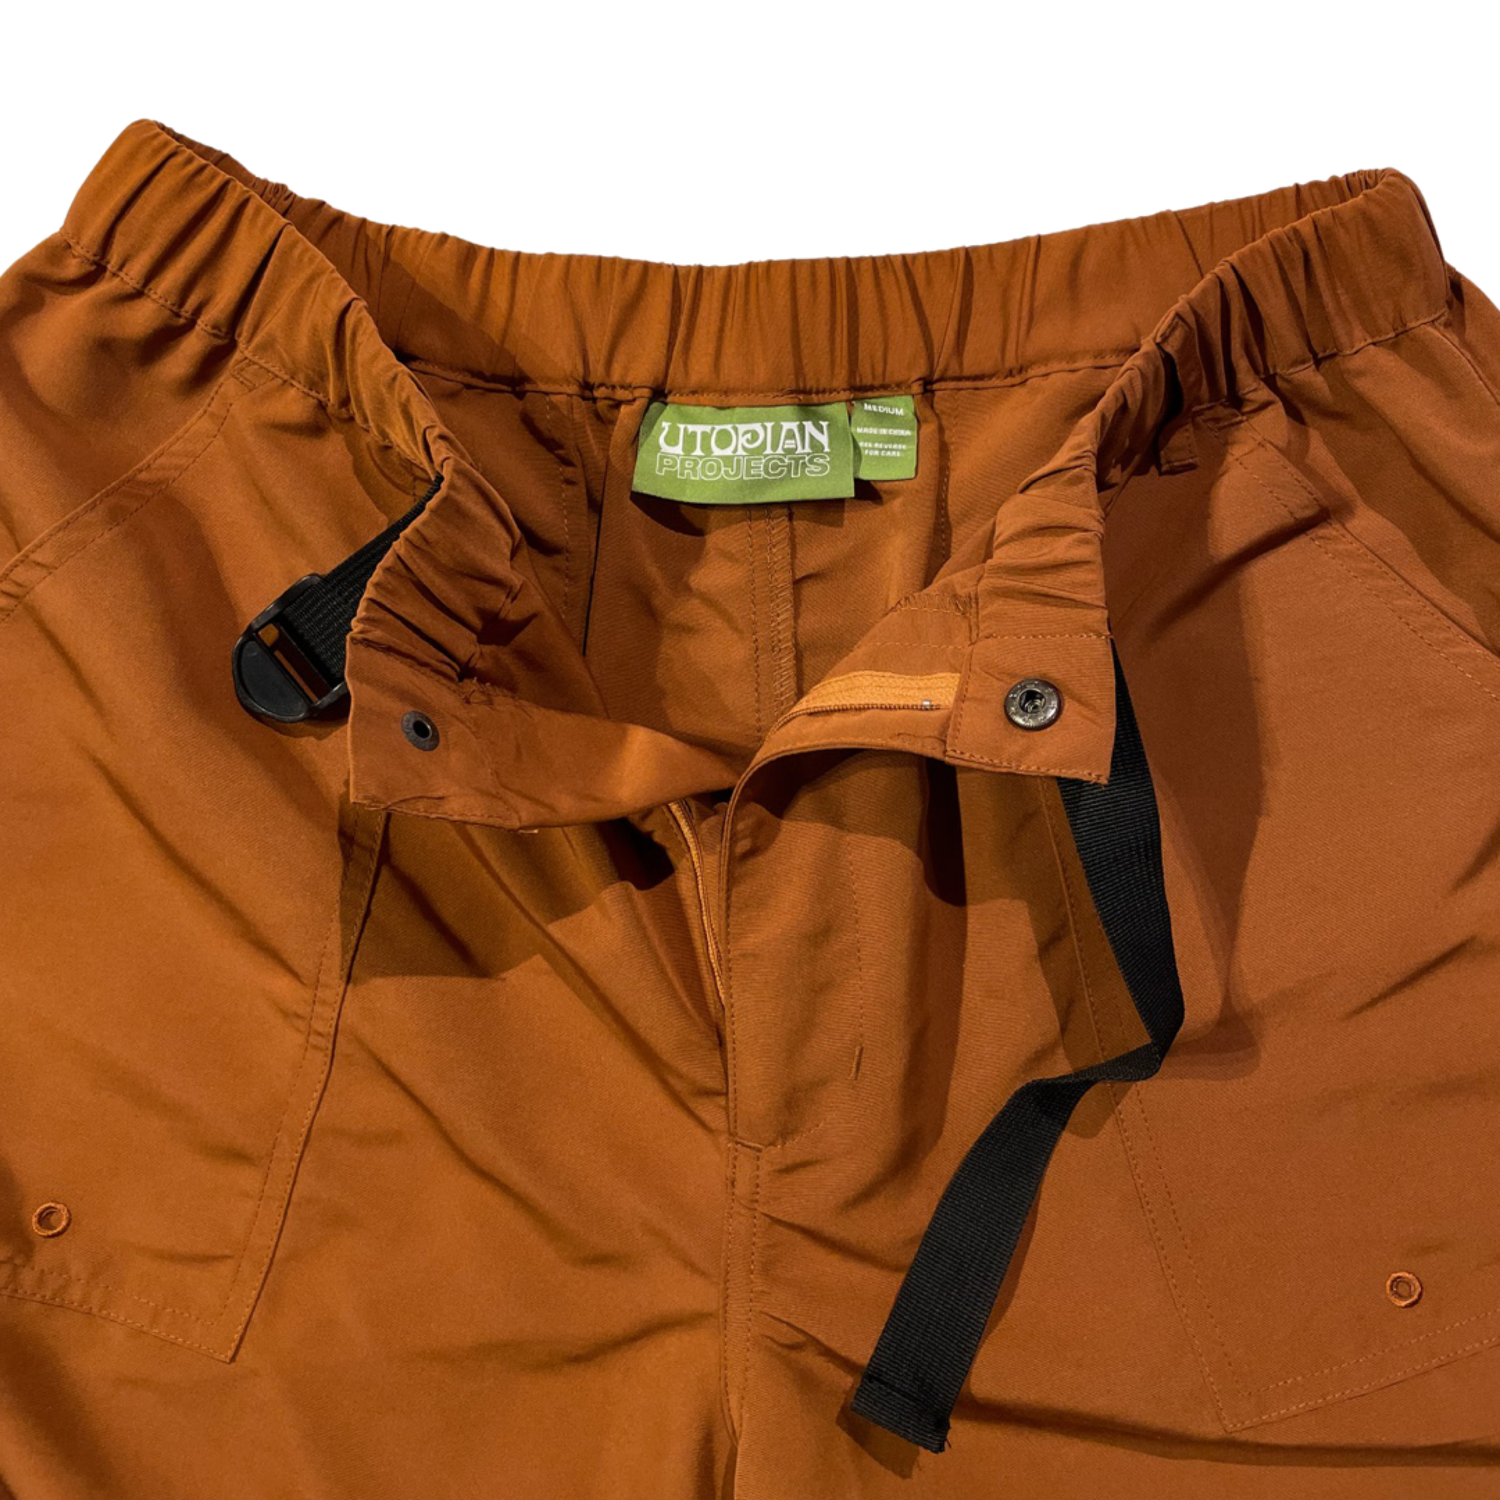 Image of Recon Short - UP13 - Caramel